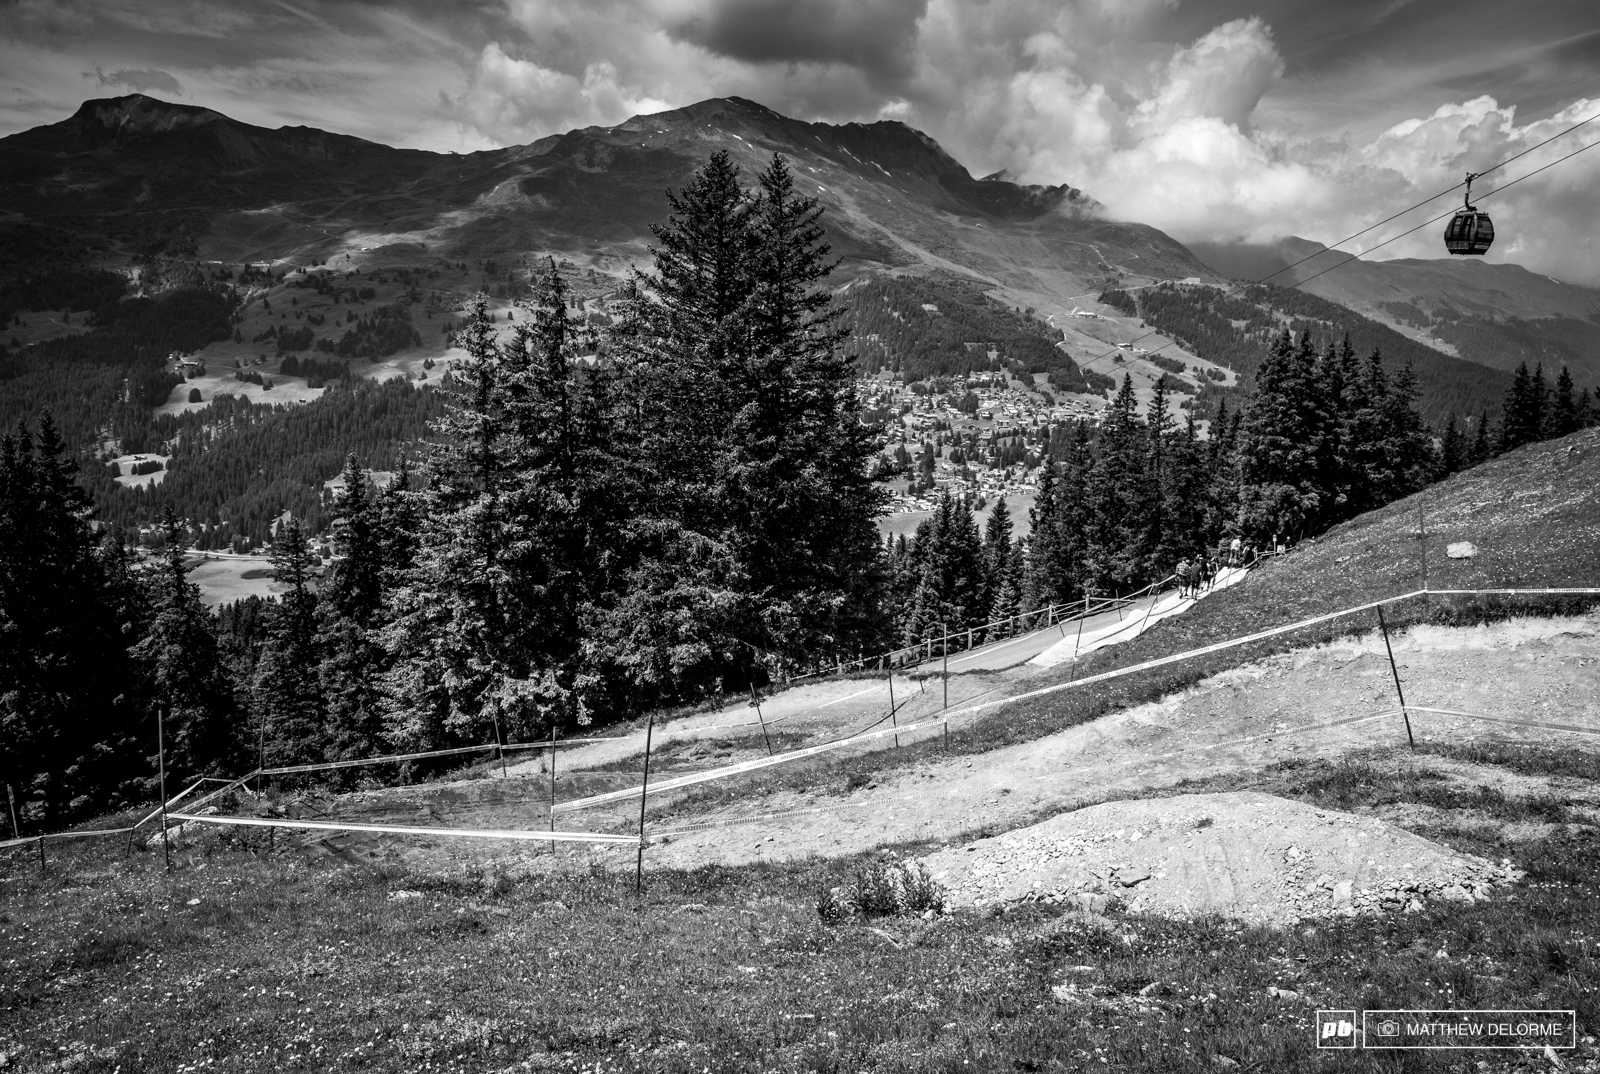 Gone is the off-camber rocks and open piste. In it s place are smooth berms. Bike park for days.